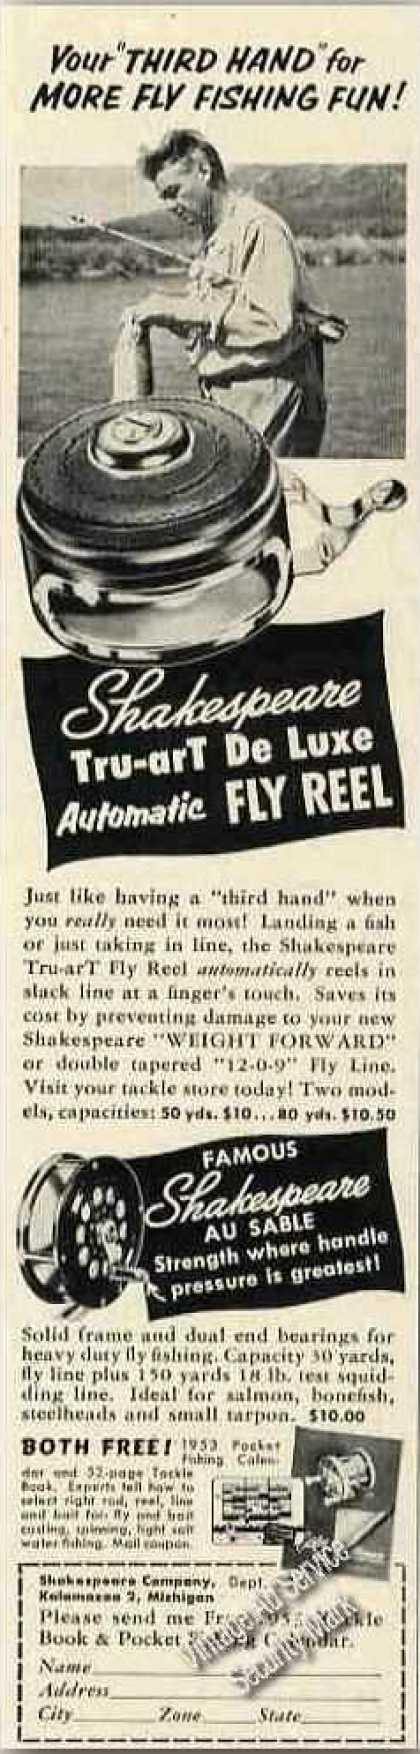 Shakespeare Tru-art Fly Reel Photo Rare (1953)